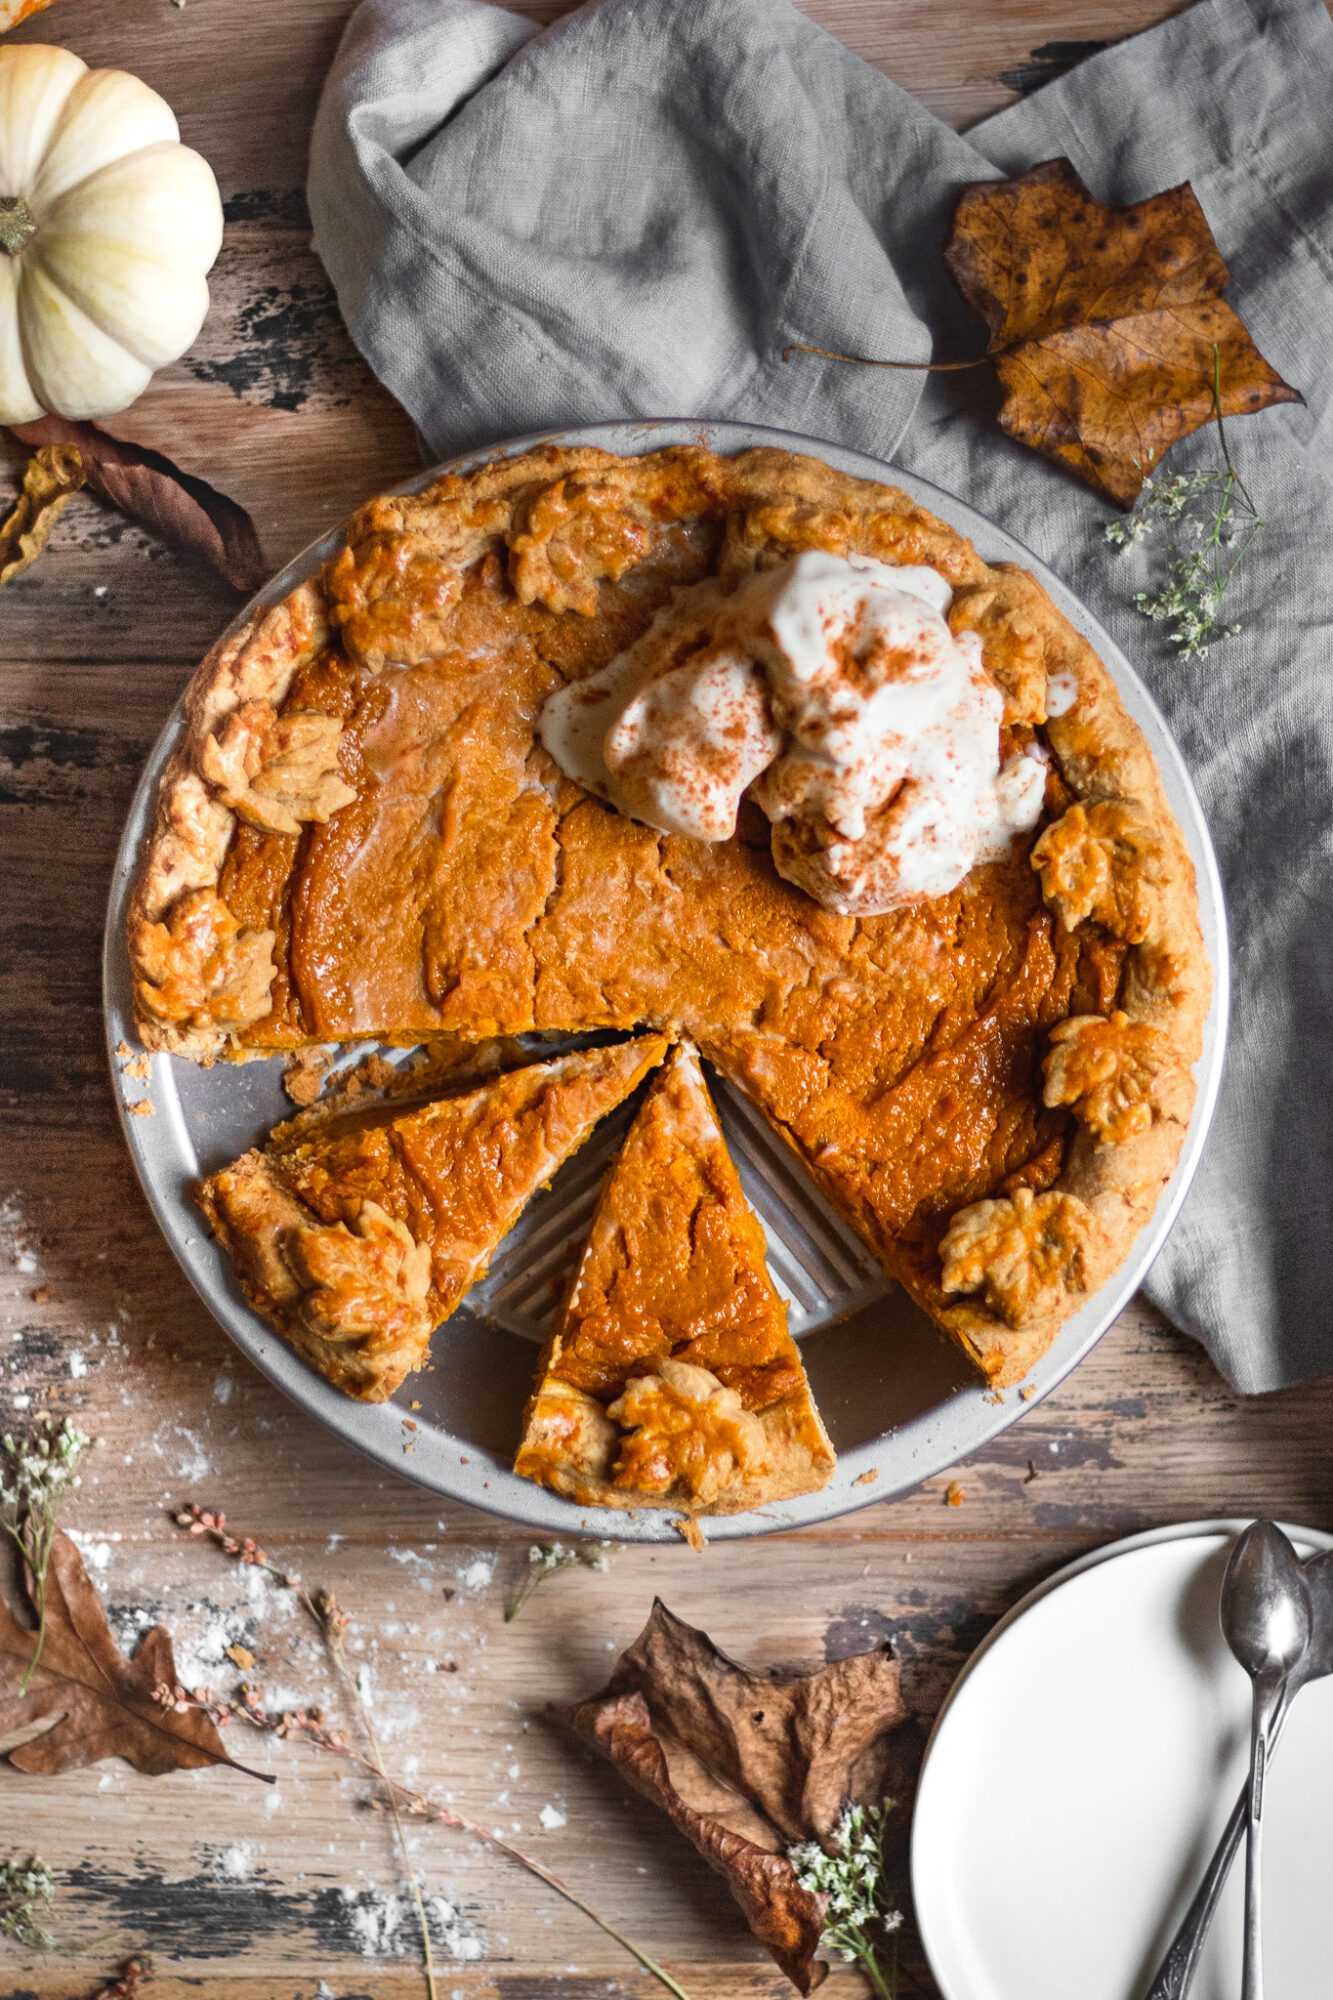 slices of sweet potato pie